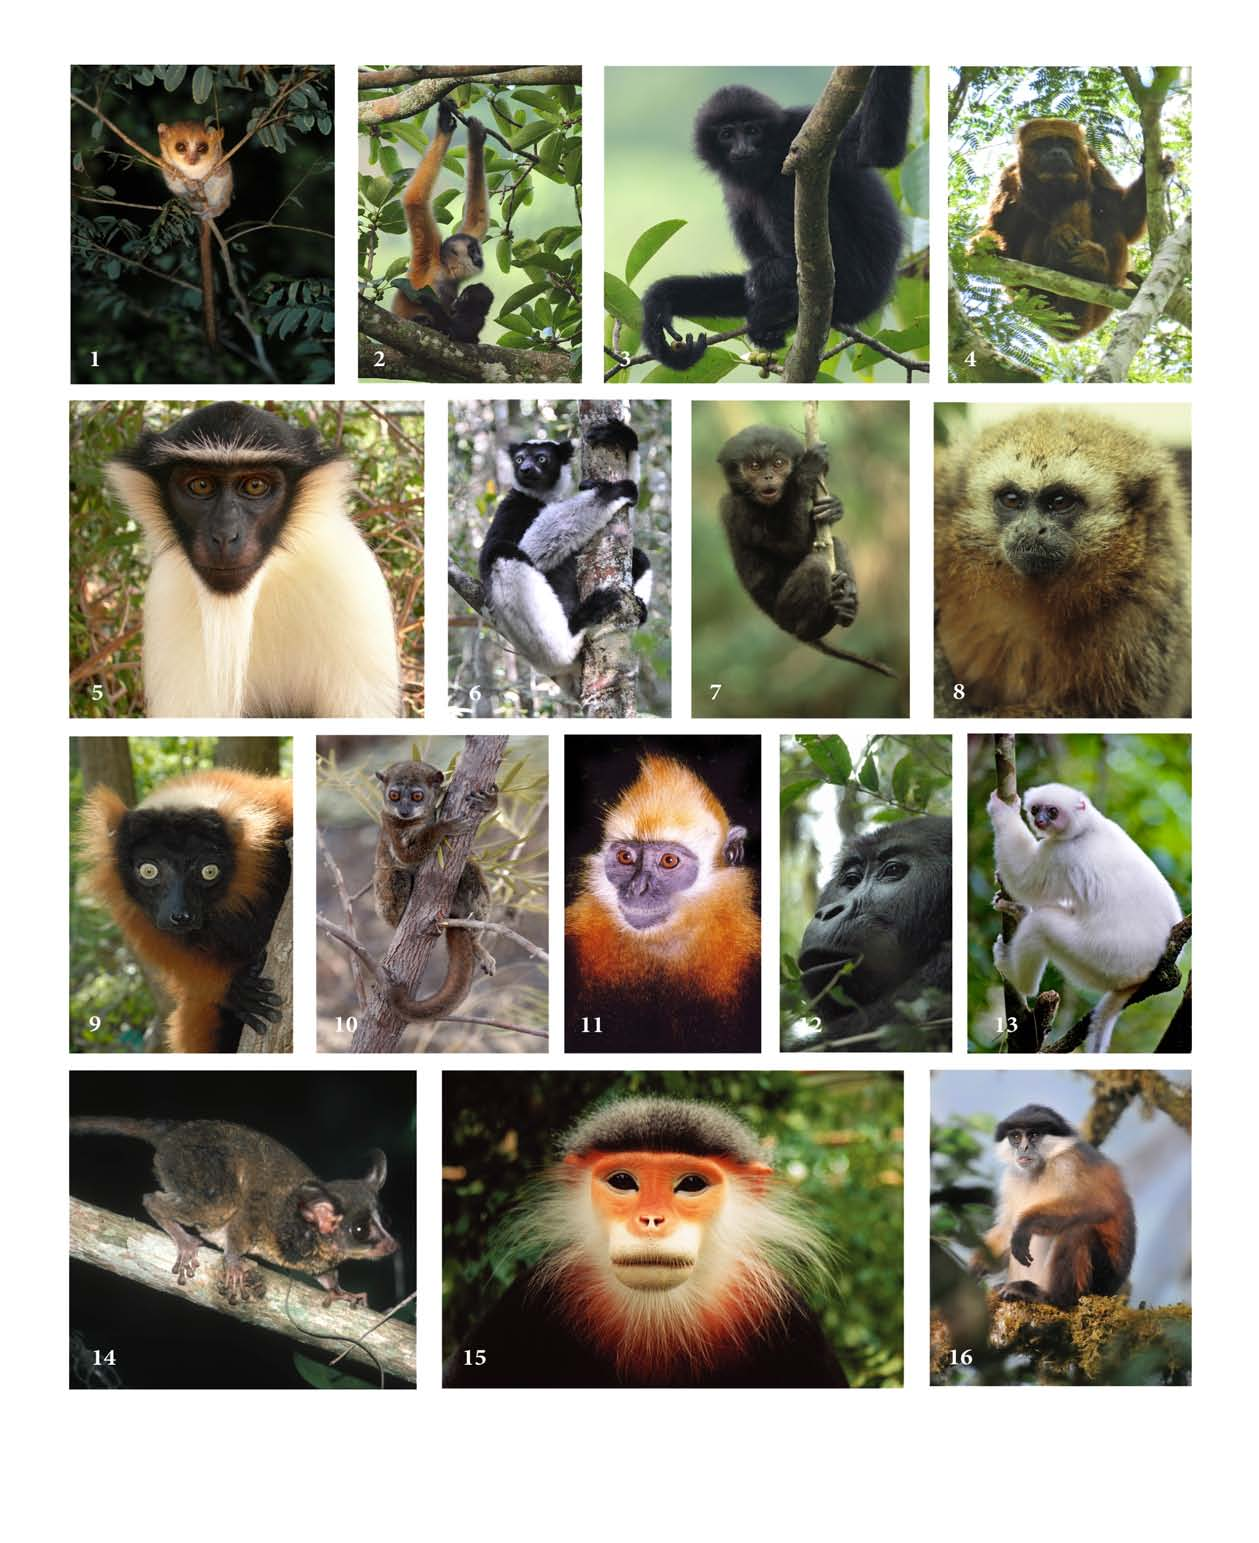 Photos of some of the Top 25 Most Endangered Primates. From top to bottom, left to right: 1. Microcebus berthae (photo by John R. Zaonarivelo); 2. Nomascus nasutus (female)(photo by Xu Yongbin); 3.